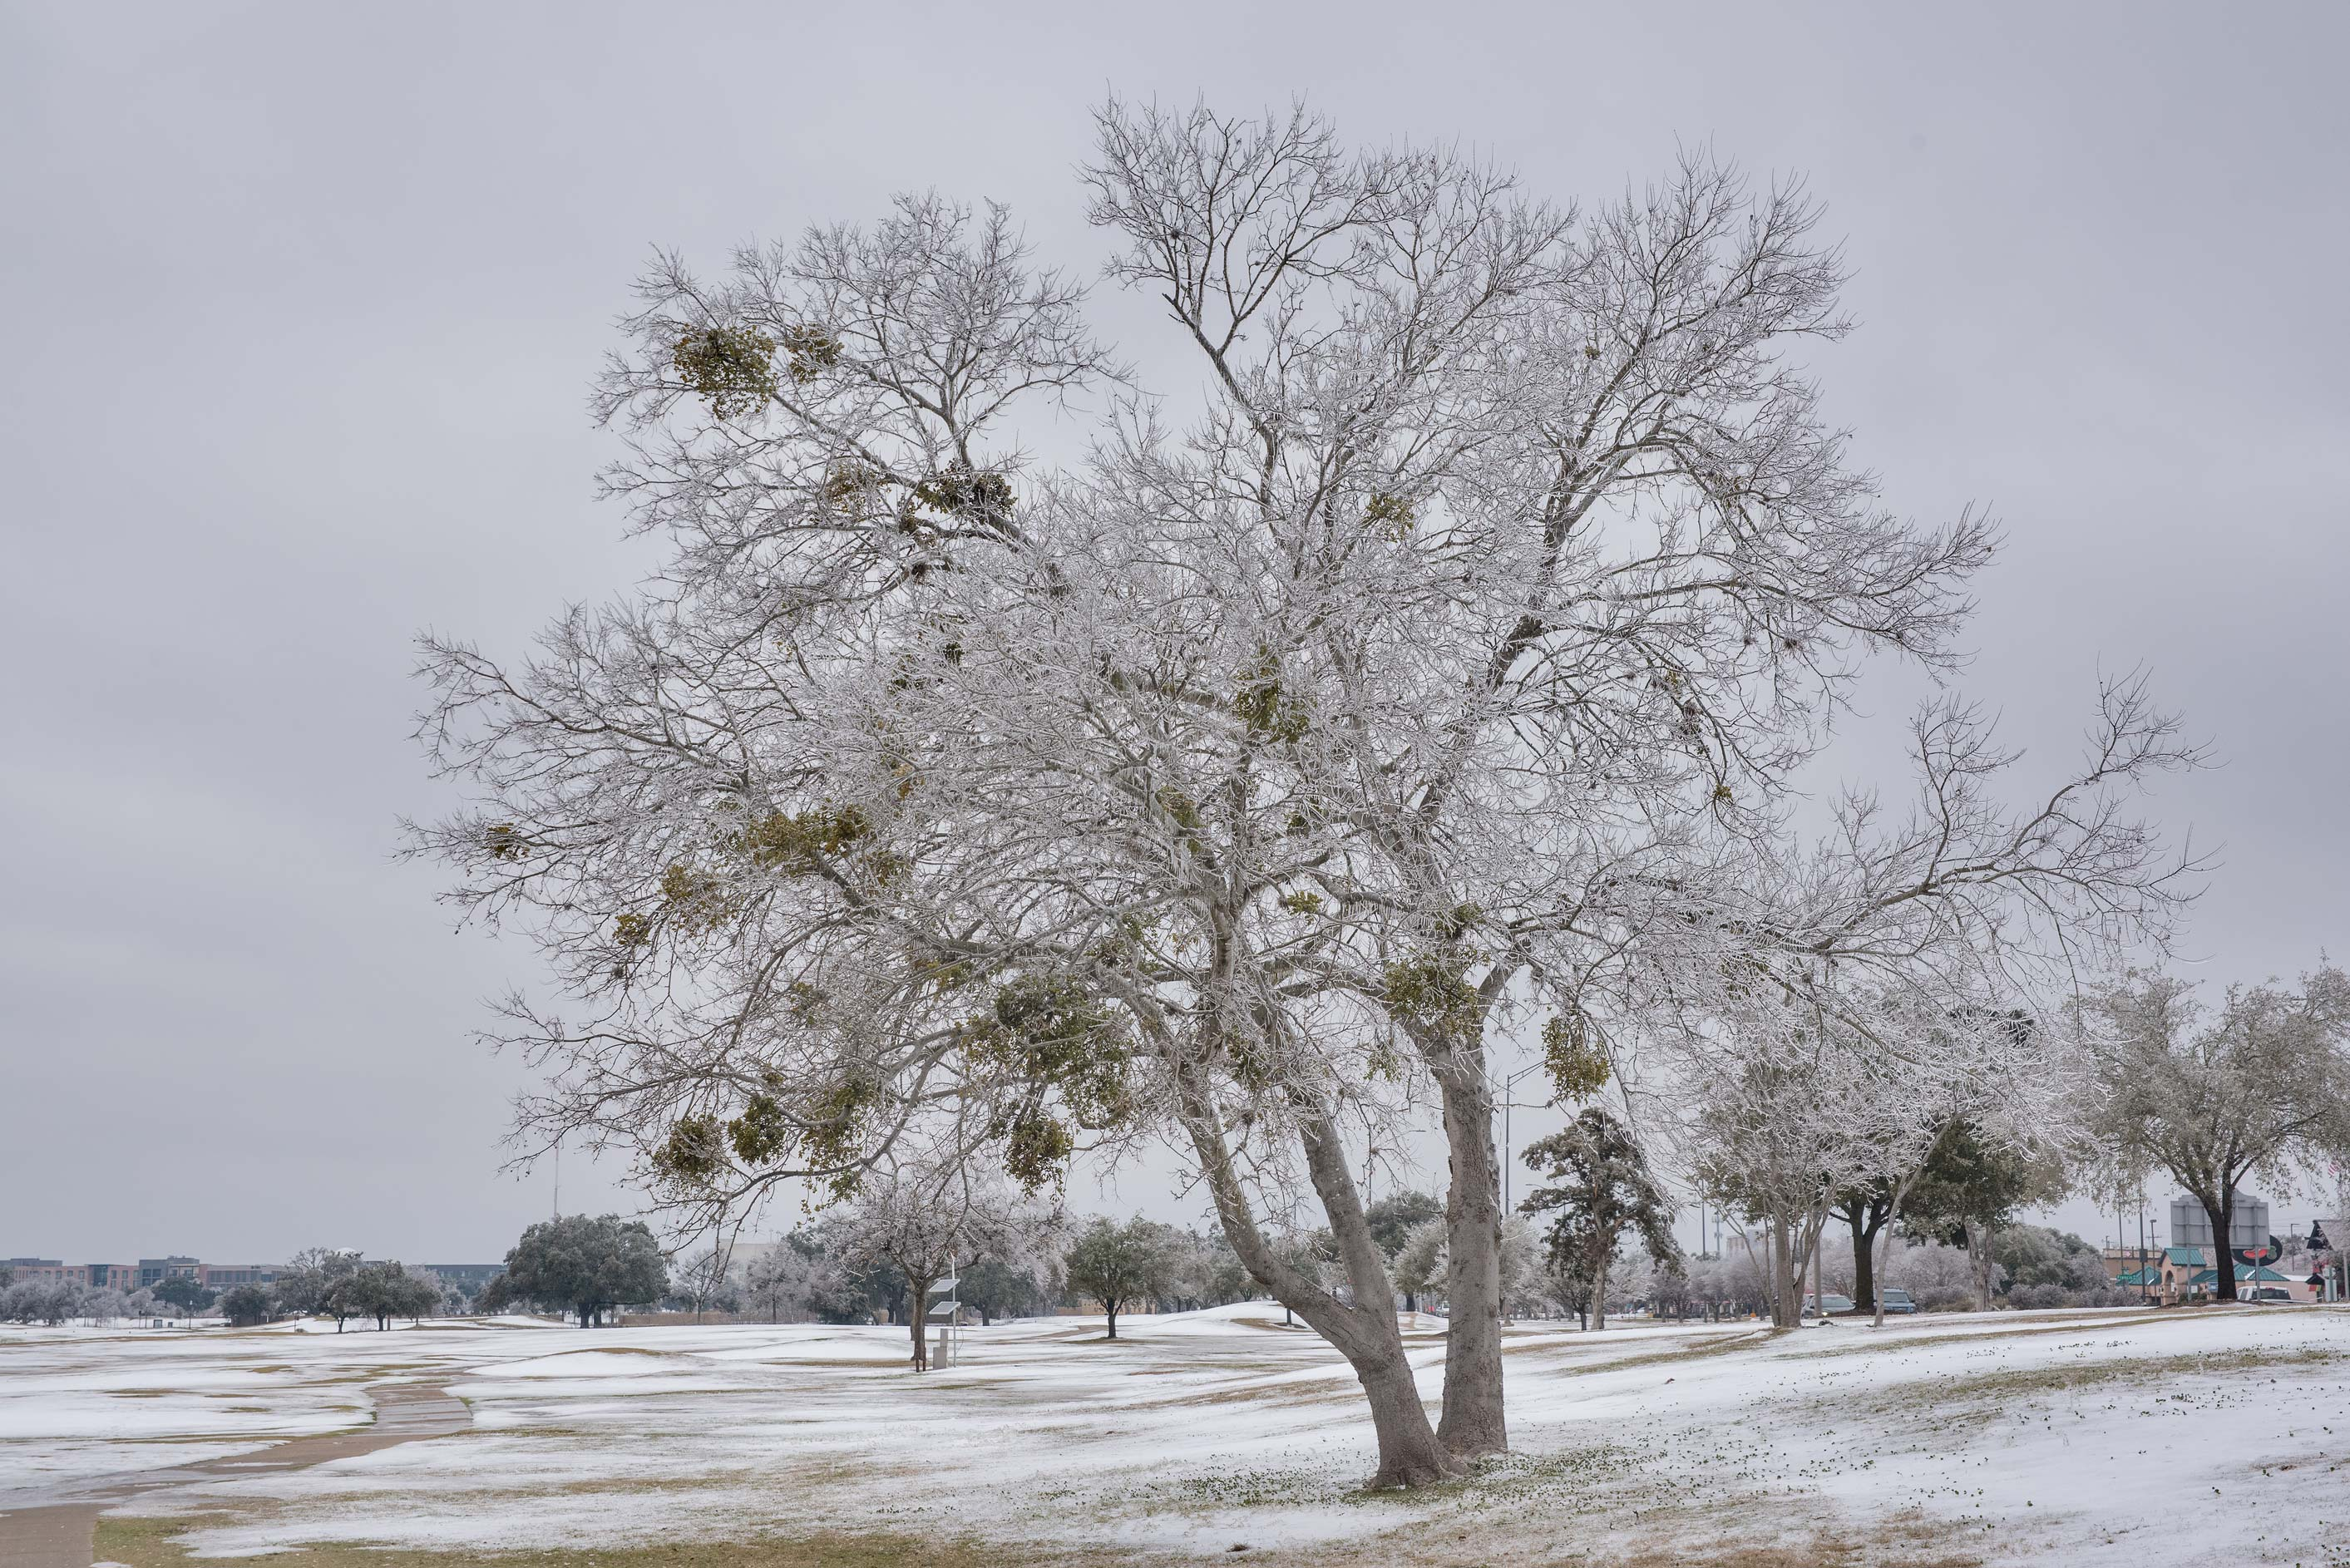 A tree glzed by ice on a golf course on campus of...M University. College Station, Texas